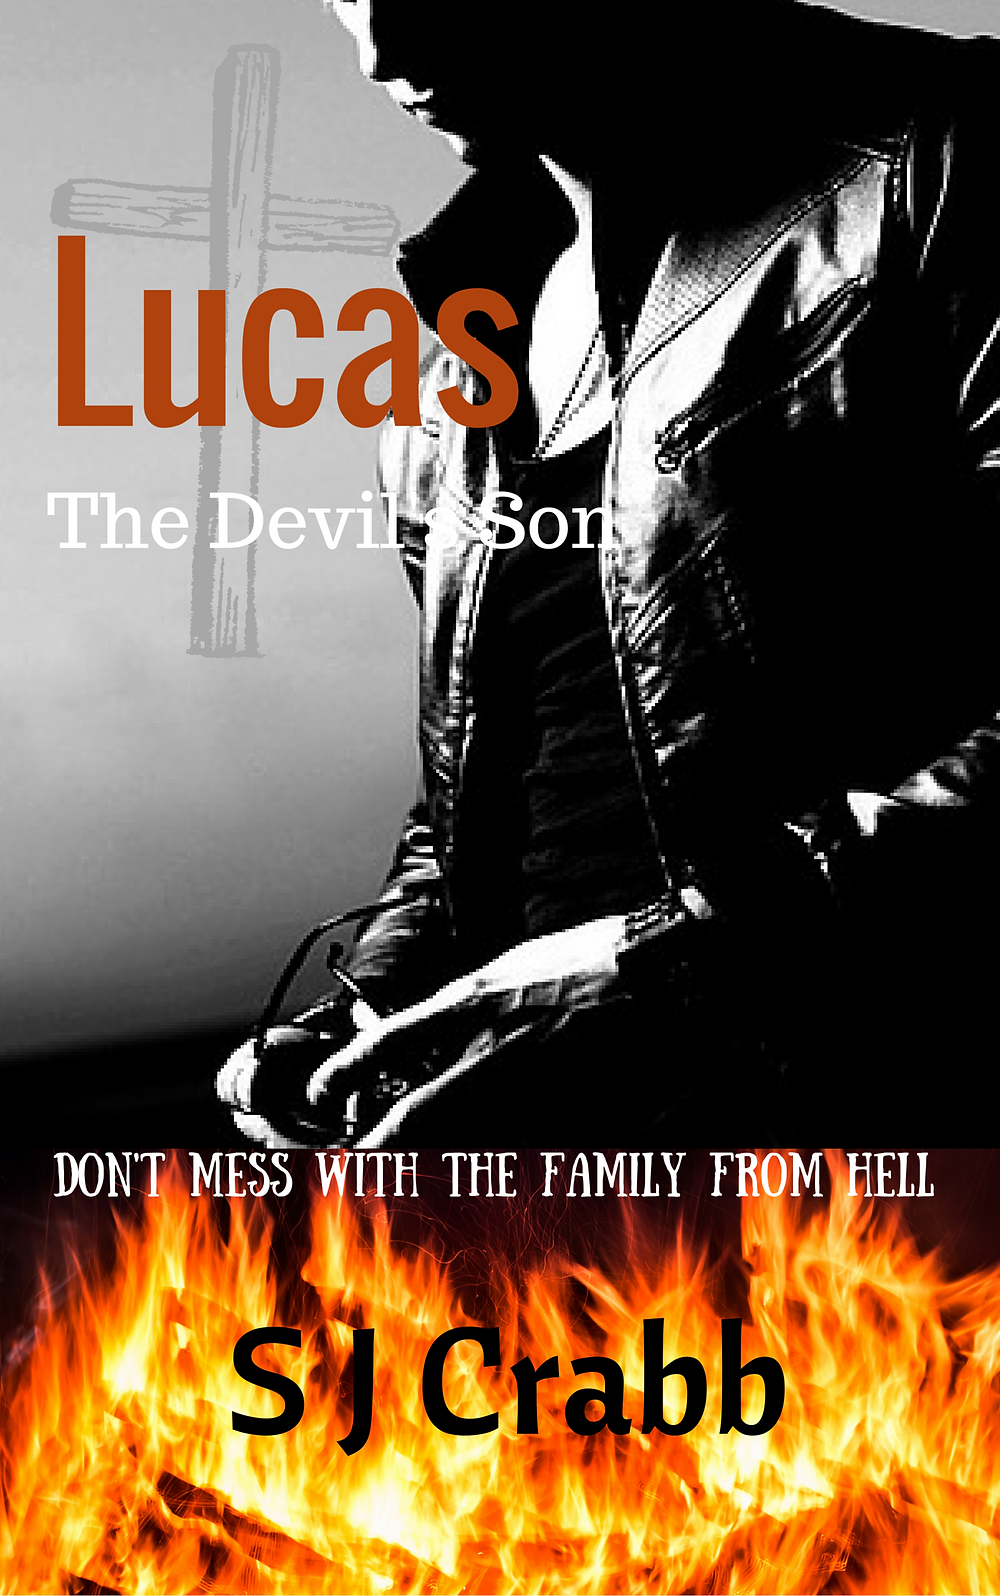 Coming Soon - Lucas - The Devil's Son